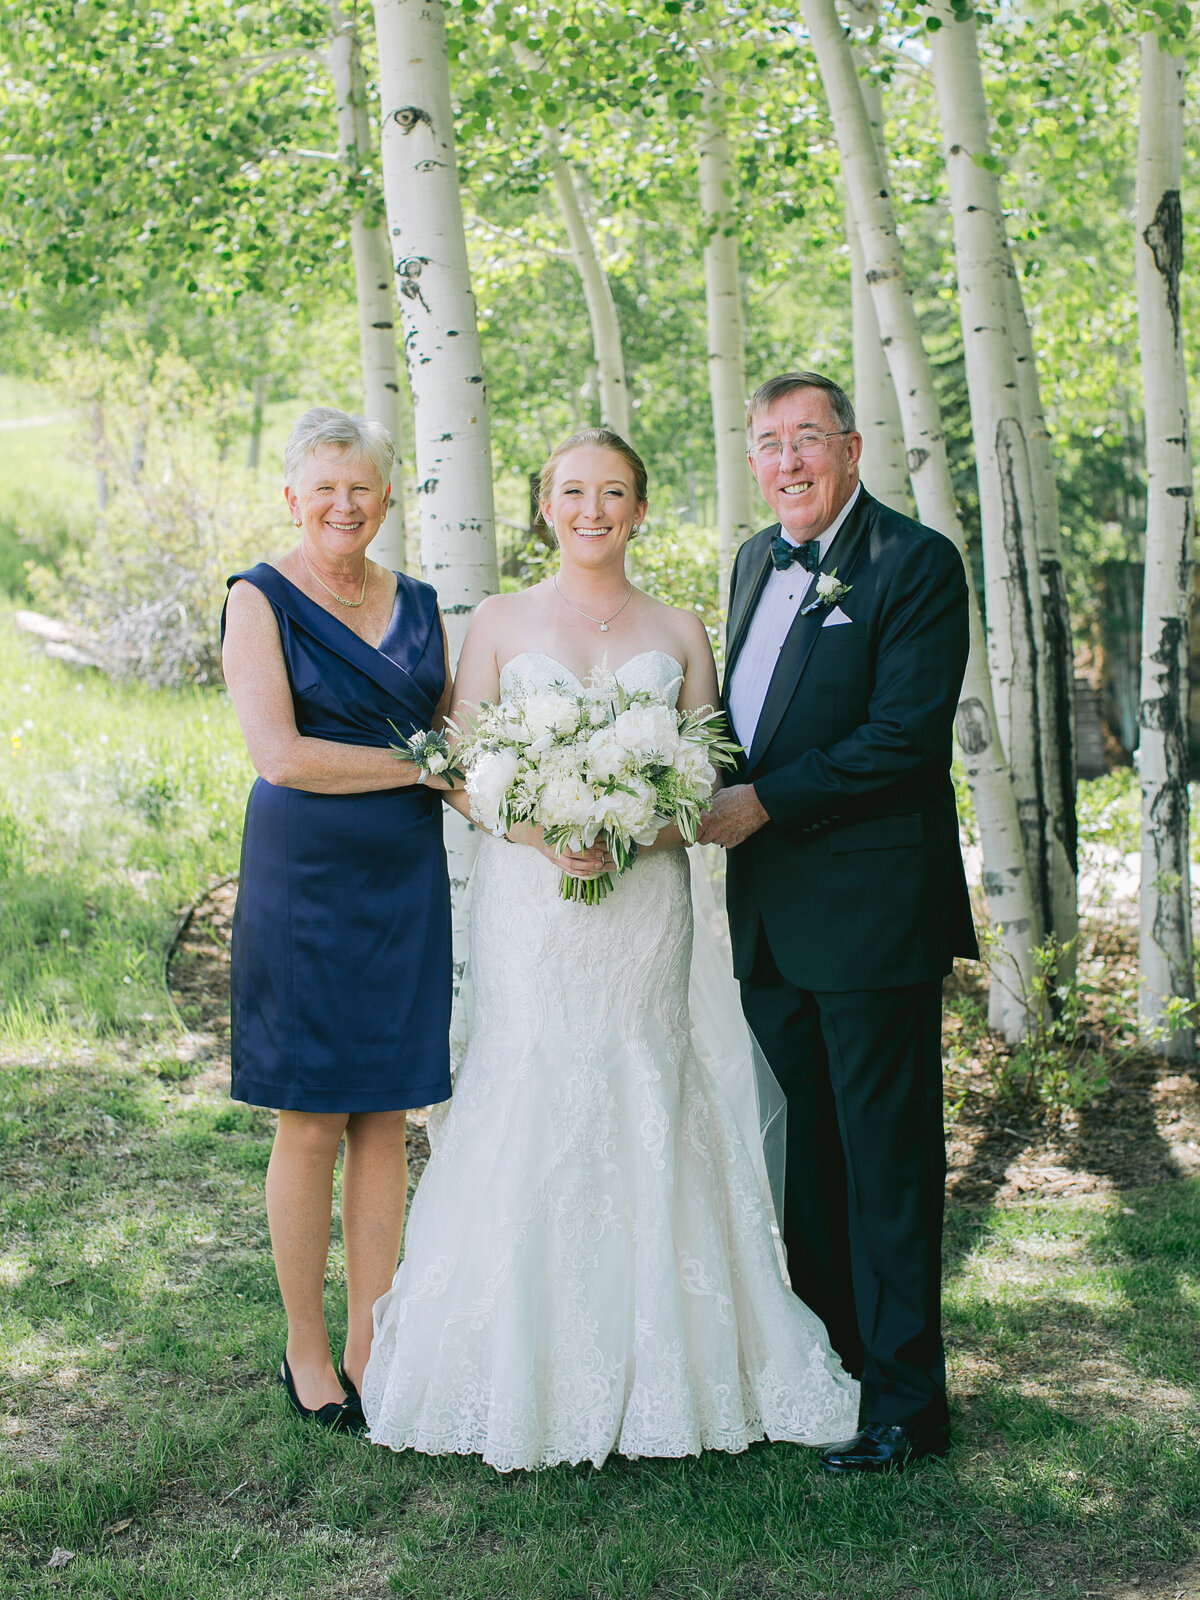 Kelly Karli - colleen-tony-wedding-guests01